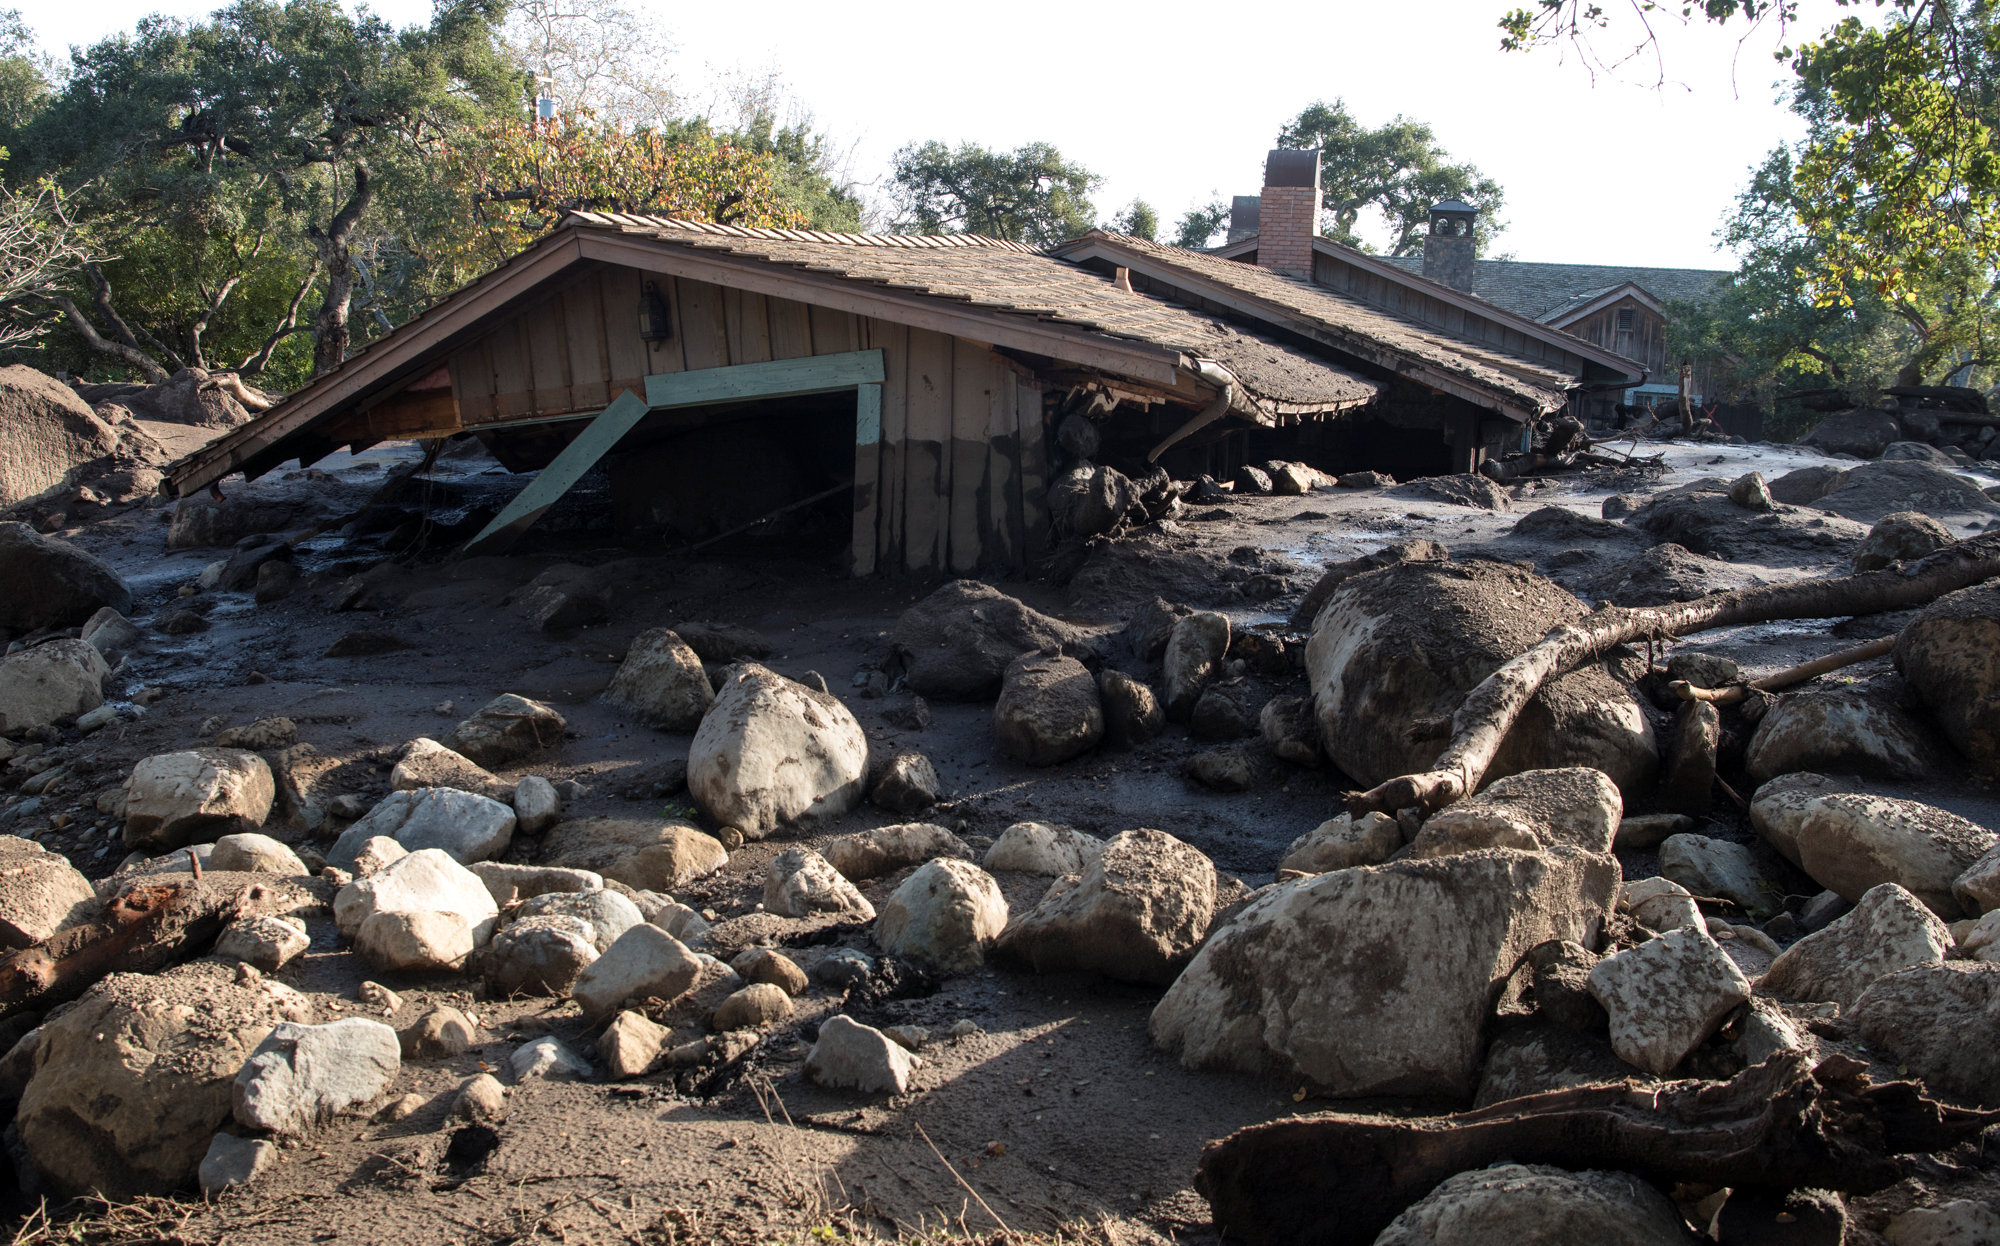 A home on Glen Oaks Road damaged by mudslides in Montecito, California, U.S., January 10, 2018.